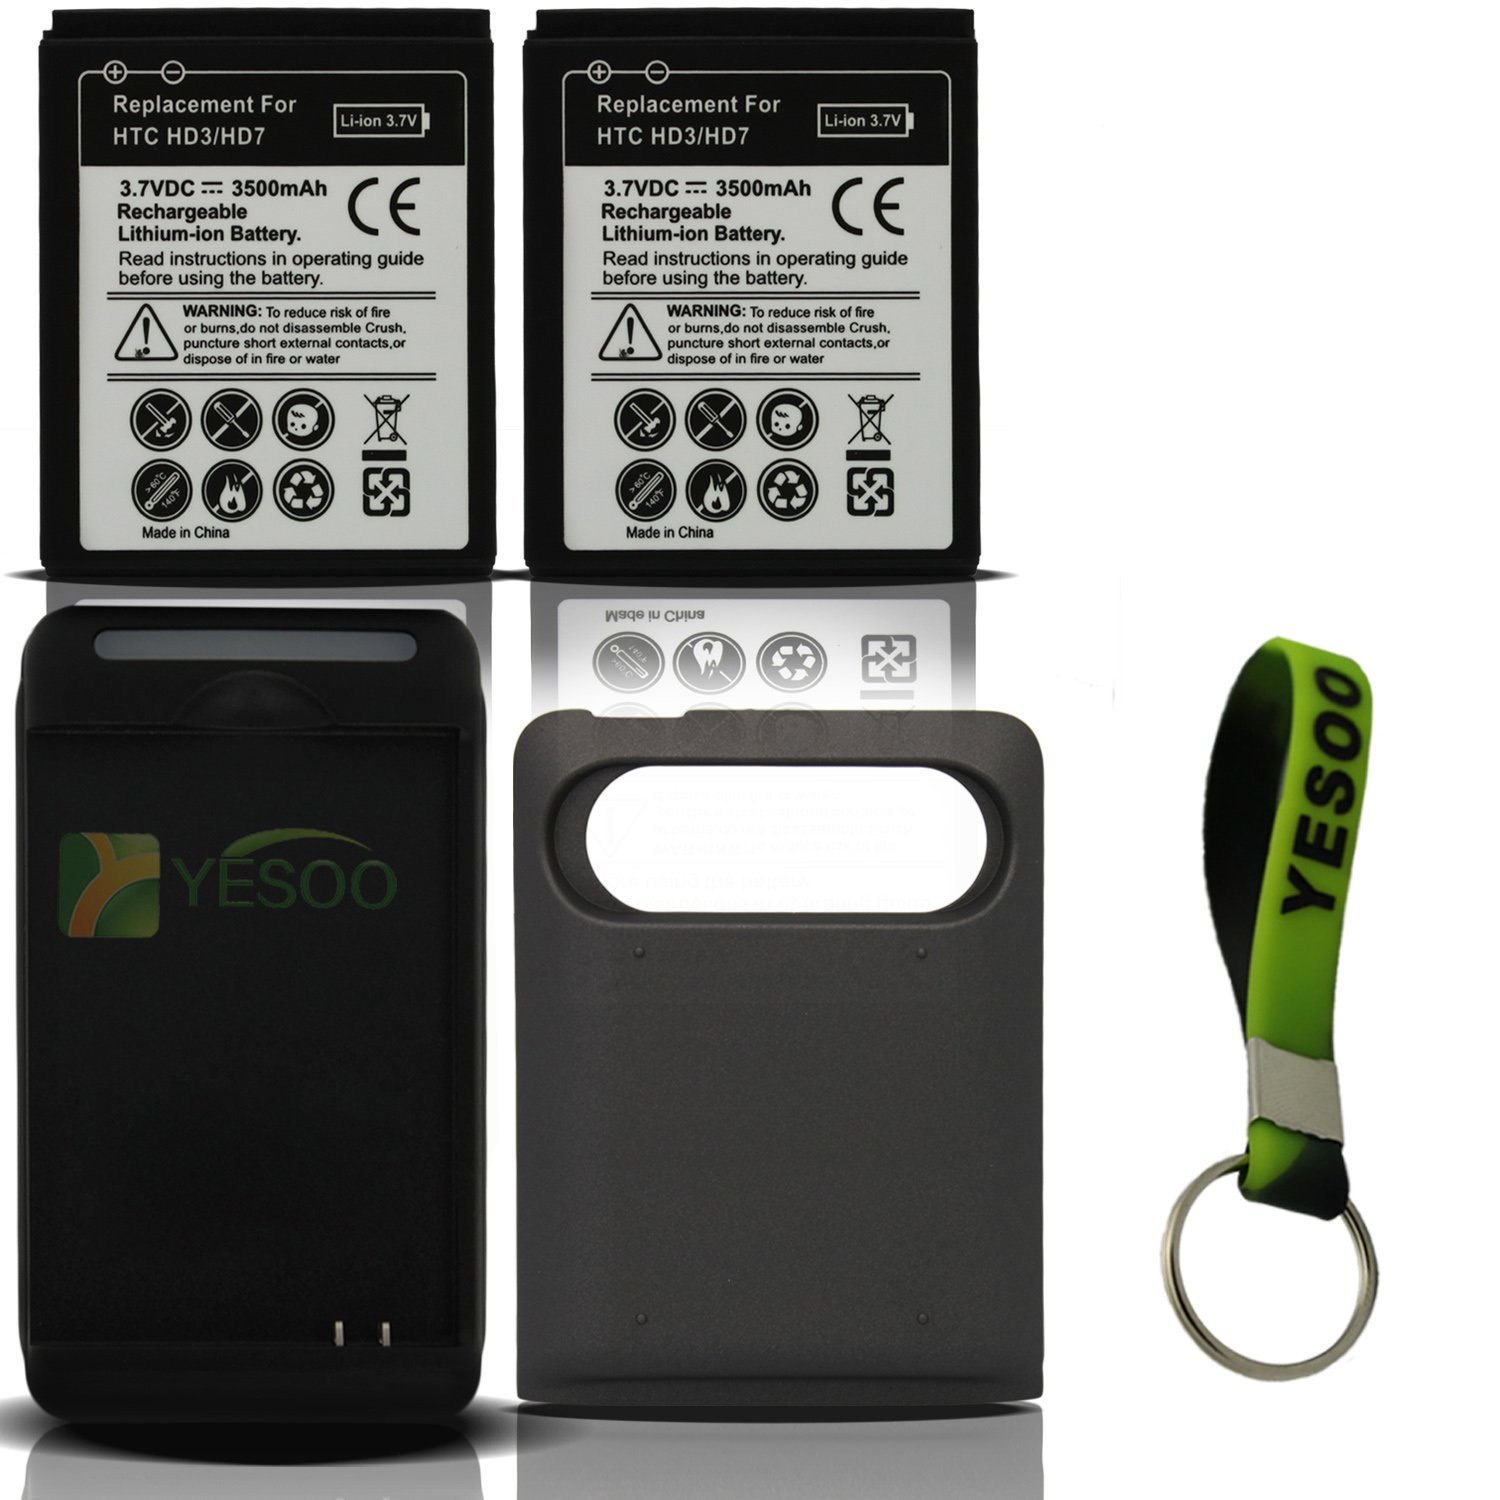 cheap htc hd7 charger find htc hd7 charger deals on line at alibaba com rh guide alibaba com HTC HD7 Battery Life HTC One X